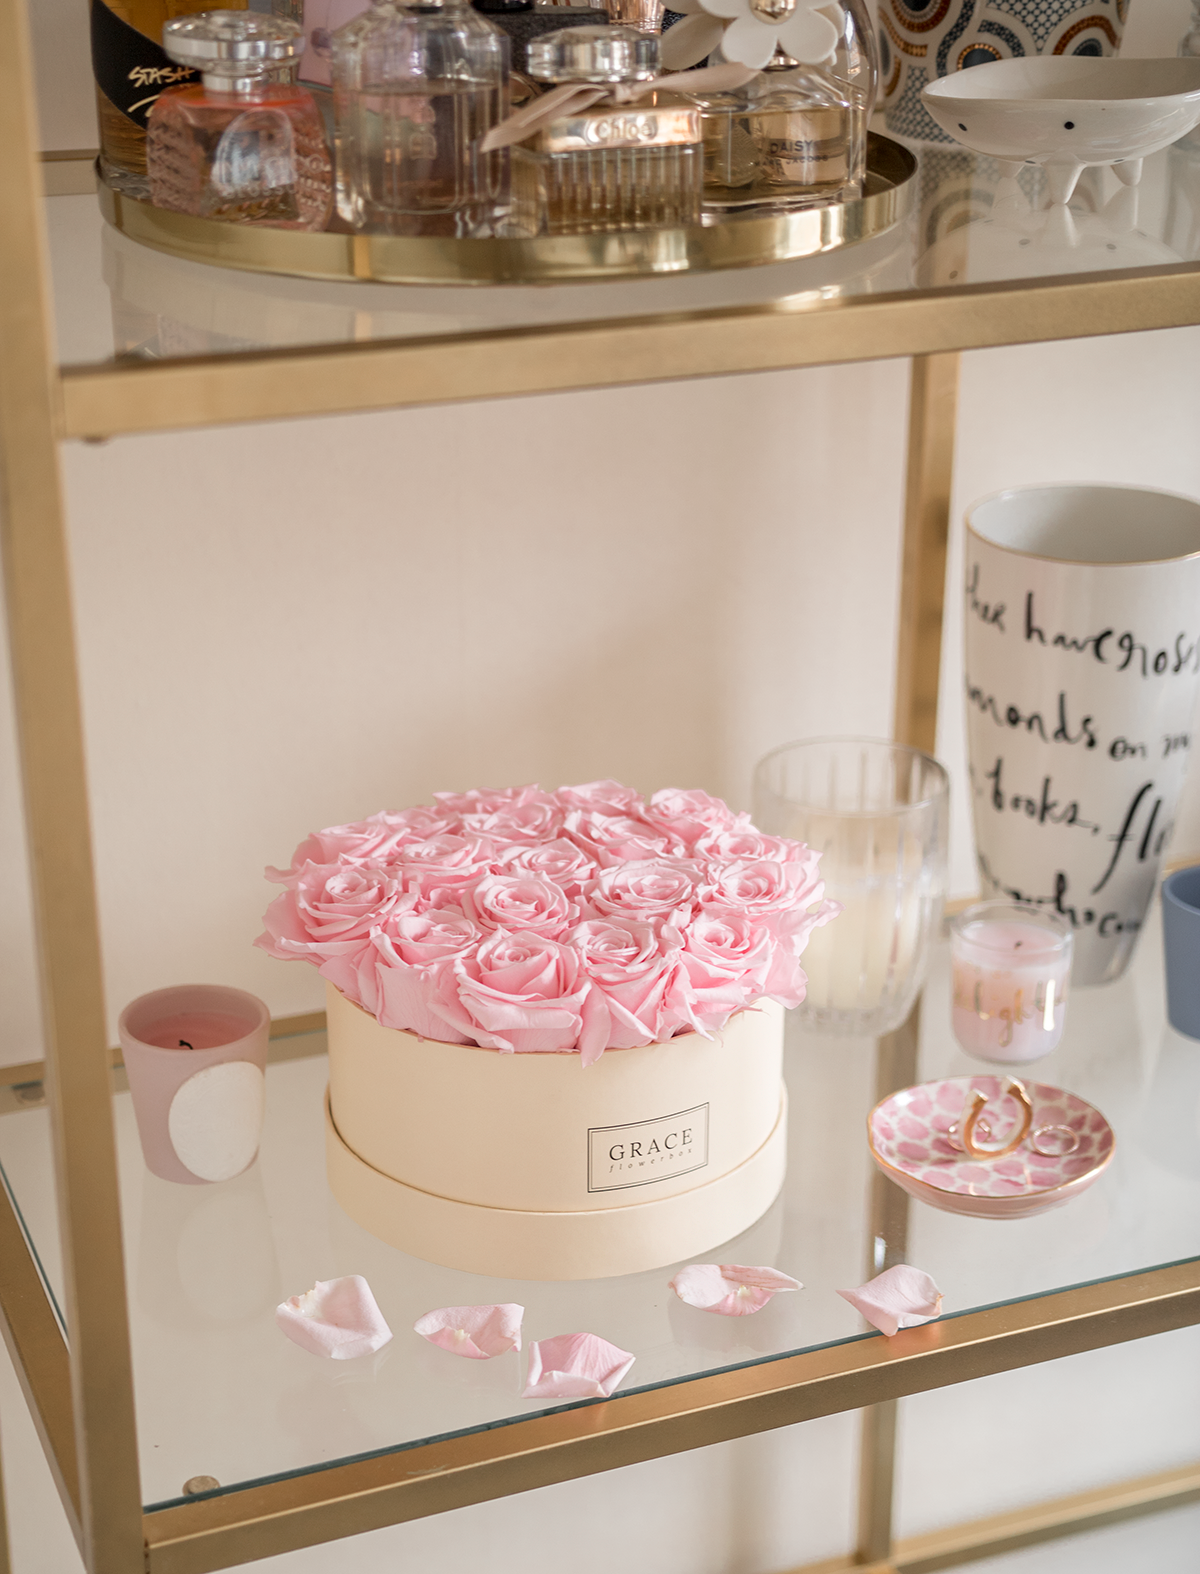 grace flower box review floral home details pretty home touches shelving